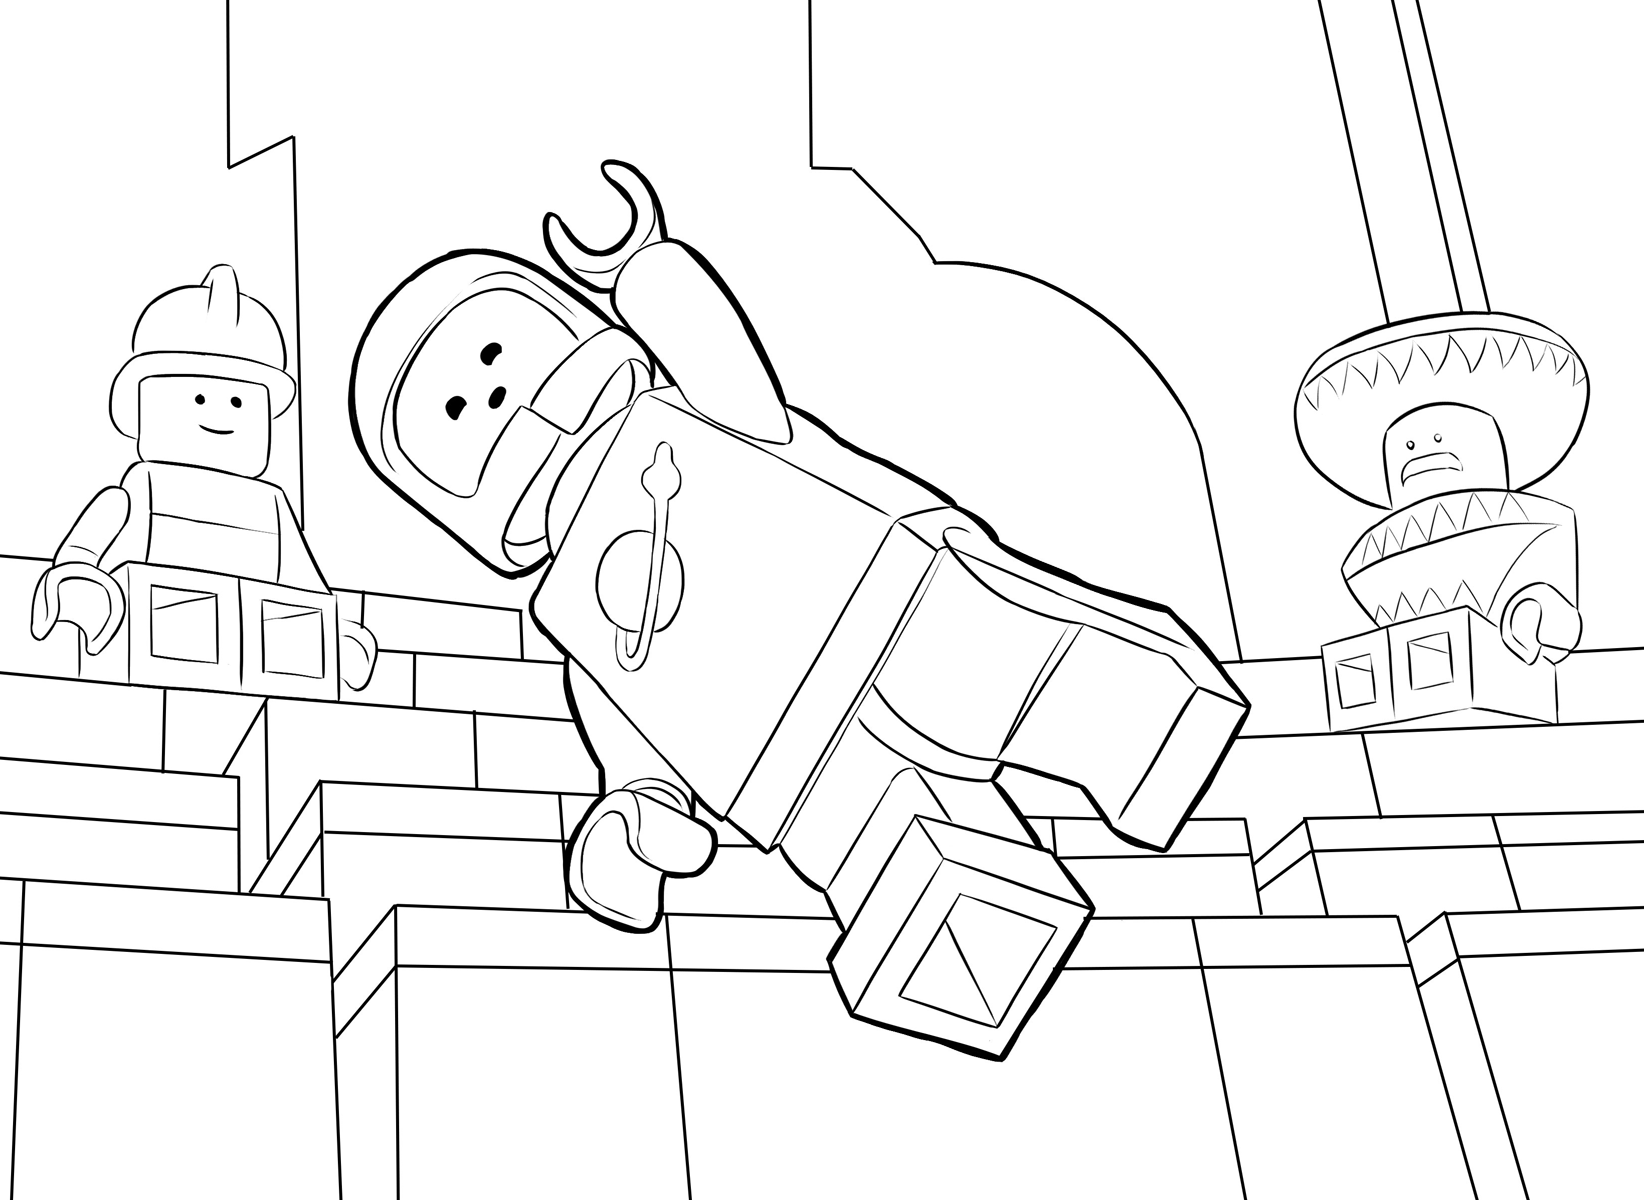 379780181051104210 additionally Wyldstyle Coloring Pages in addition Benny Lastronauta Mentre Precipita besides The Lego Movie Coloring Pages The Movie Coloring Pages Printable Online The Movie Coloring Pages Lego Batman Movie Free Coloring Pages also DW5pa2l0dHkgaW5mbGF0aW9u. on from the lego movie benny